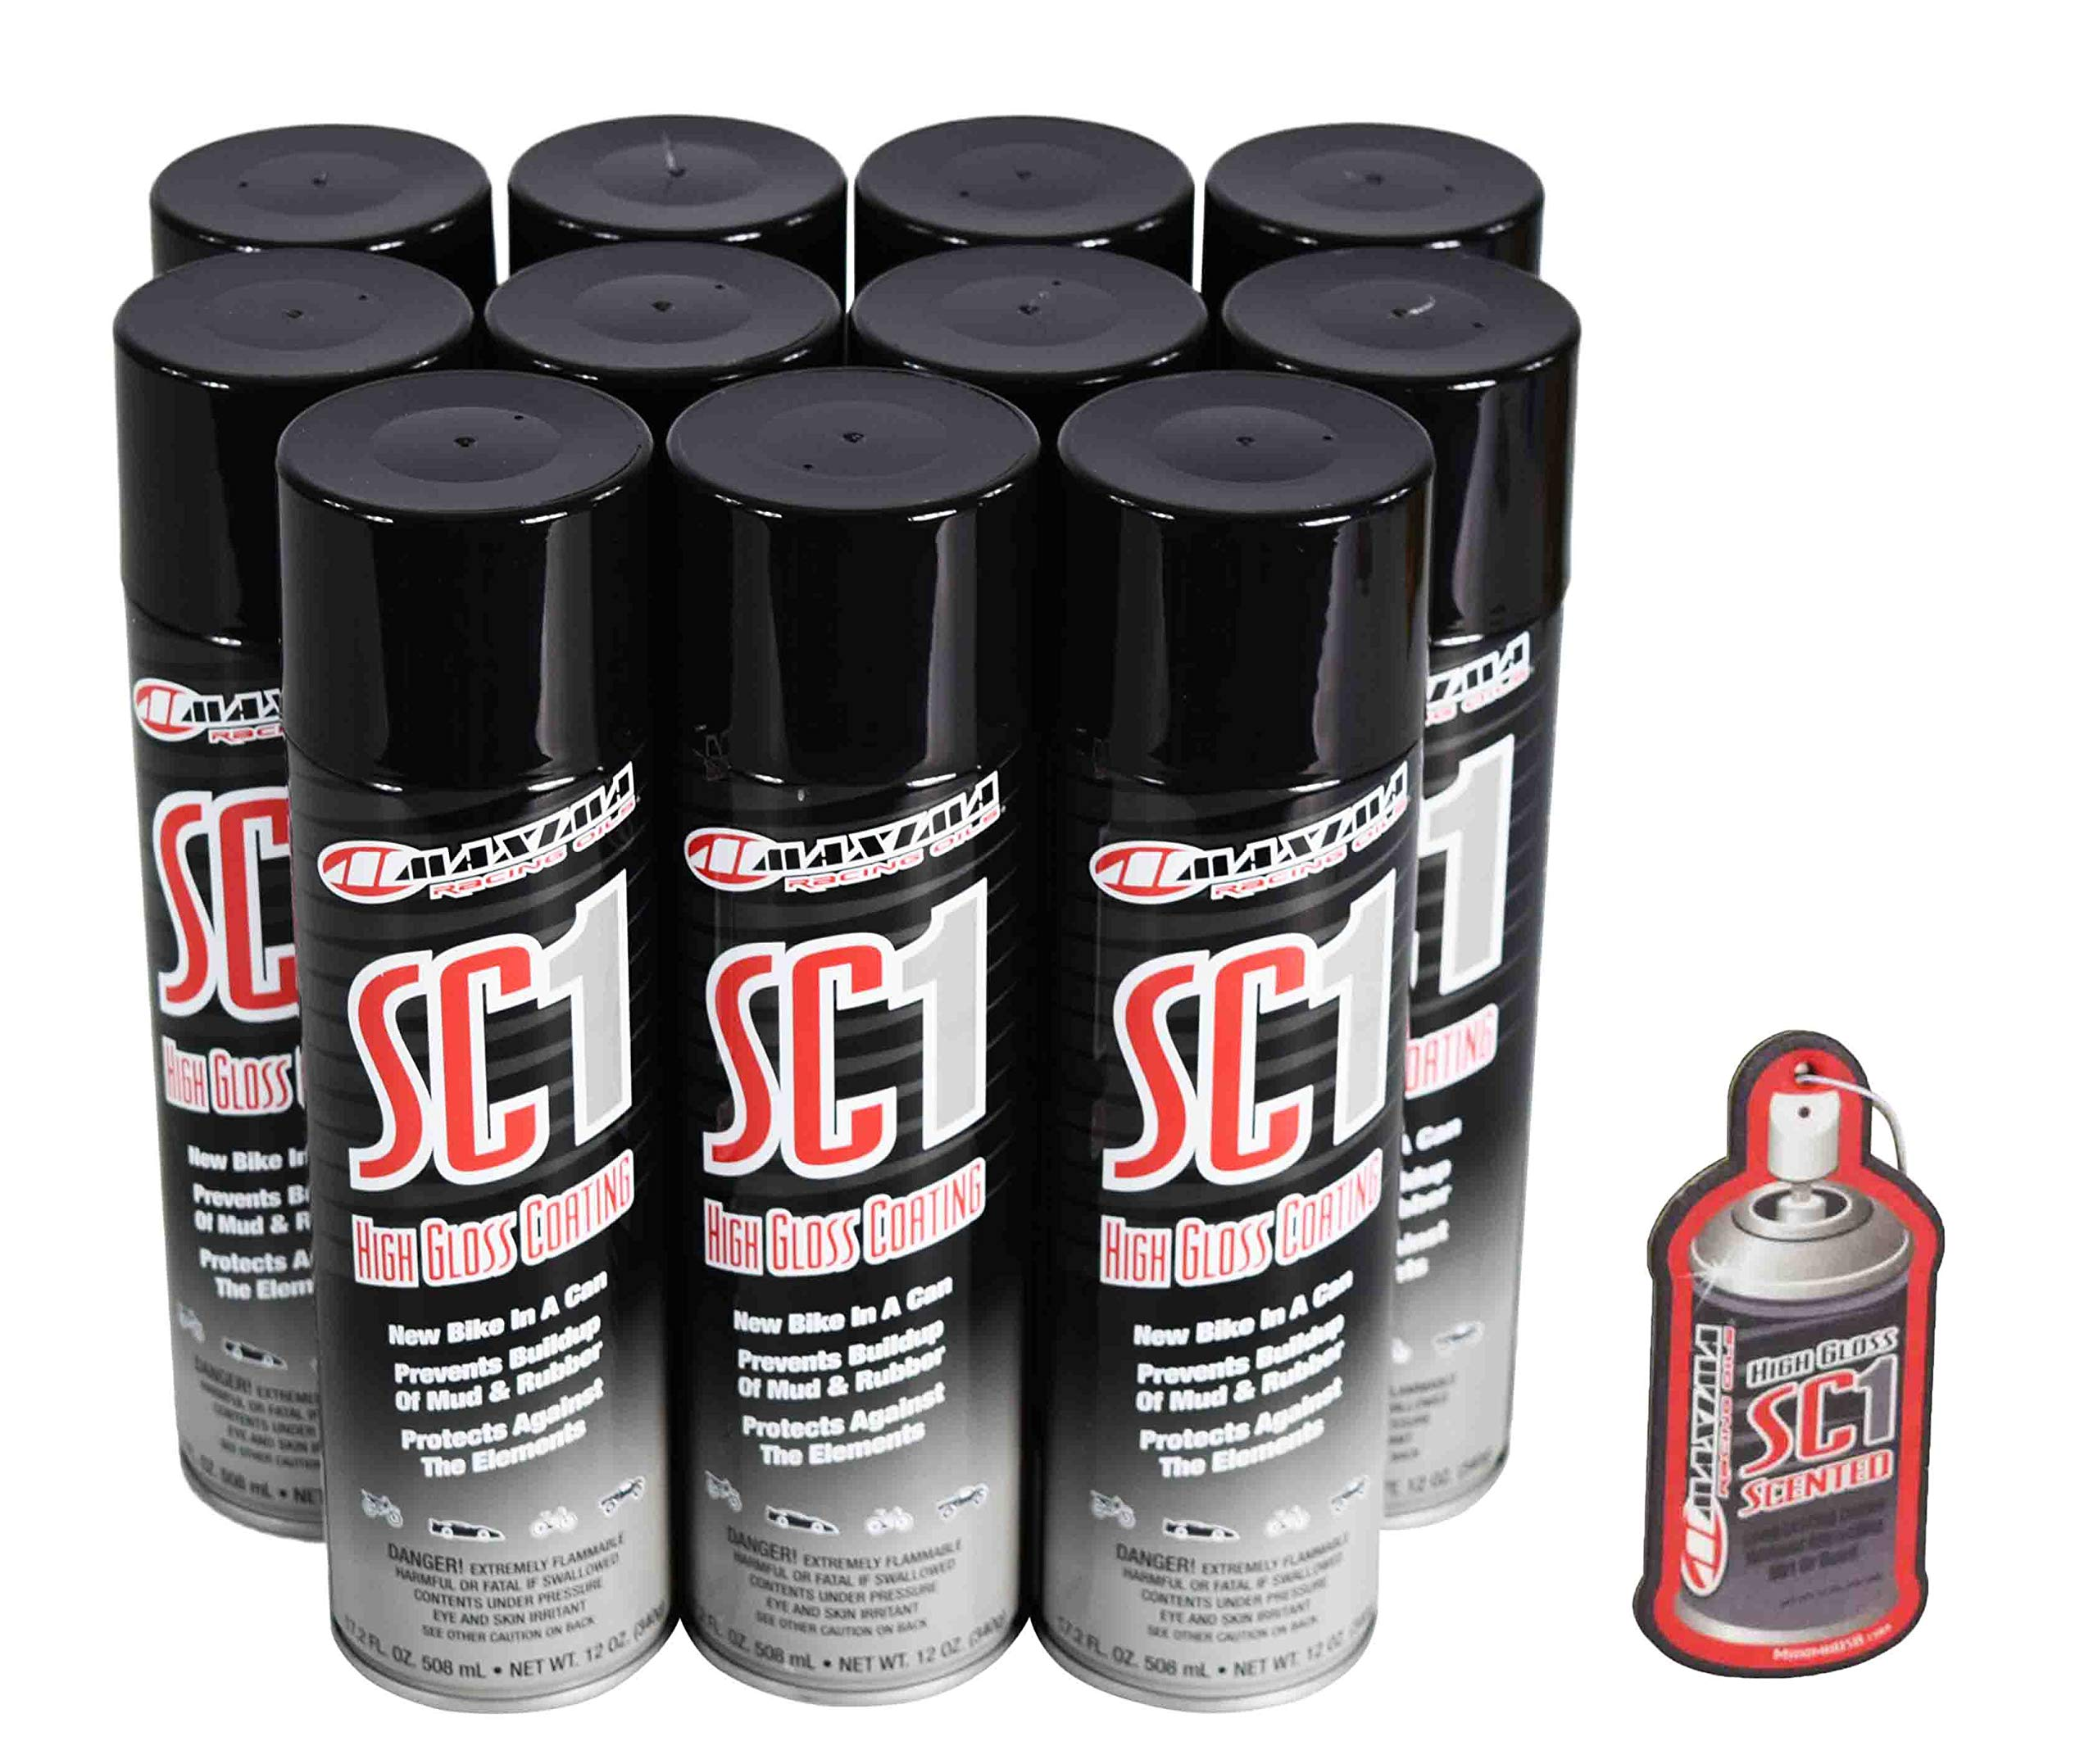 Maxima 78920 SC1 High Gloss Coating 17.2 FL. OZ. 508 mL - NET WT. 12 OZ Cleaner with SC1 Scented Air Freshener (11-Pack)